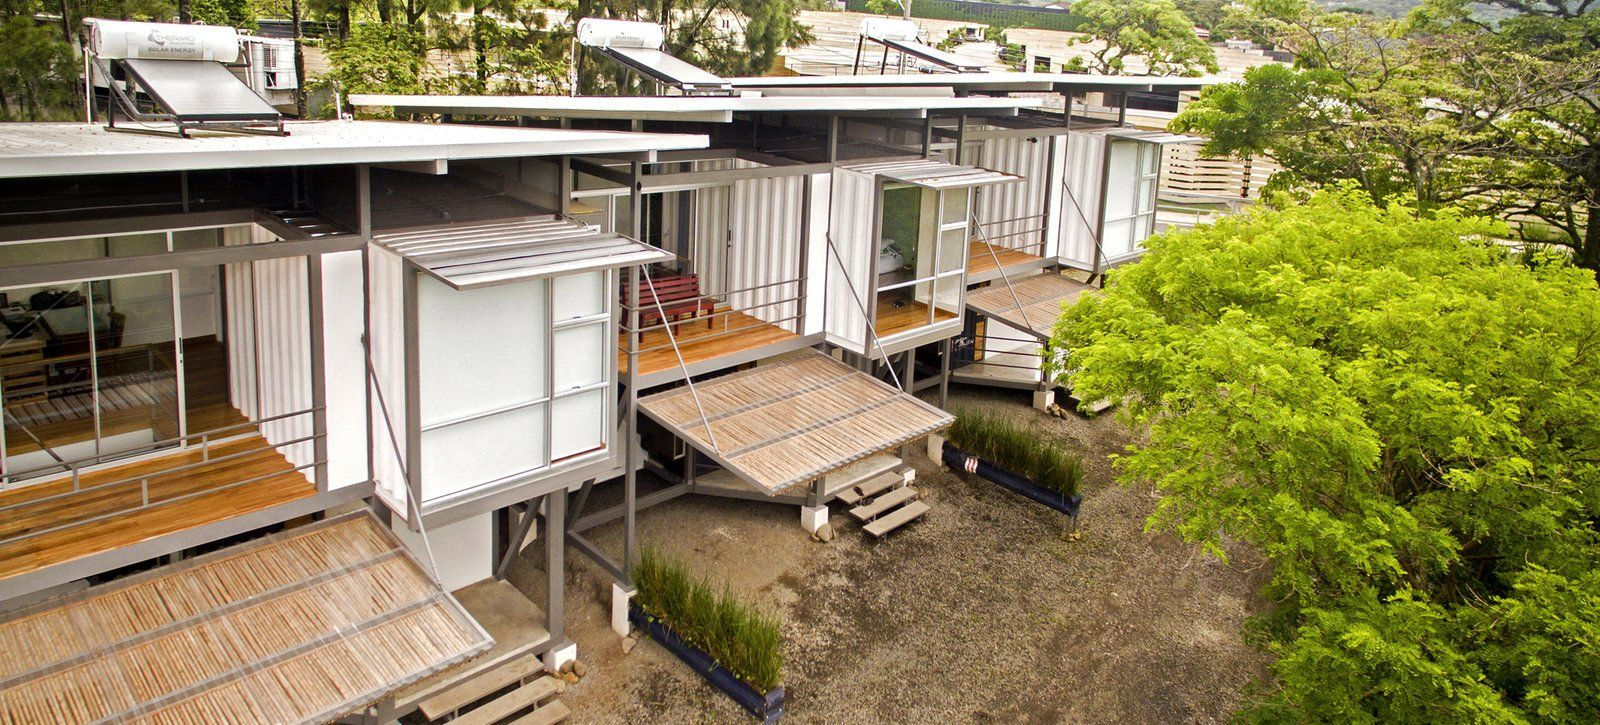 Three environmentally friendly container homes Tagged Exterior